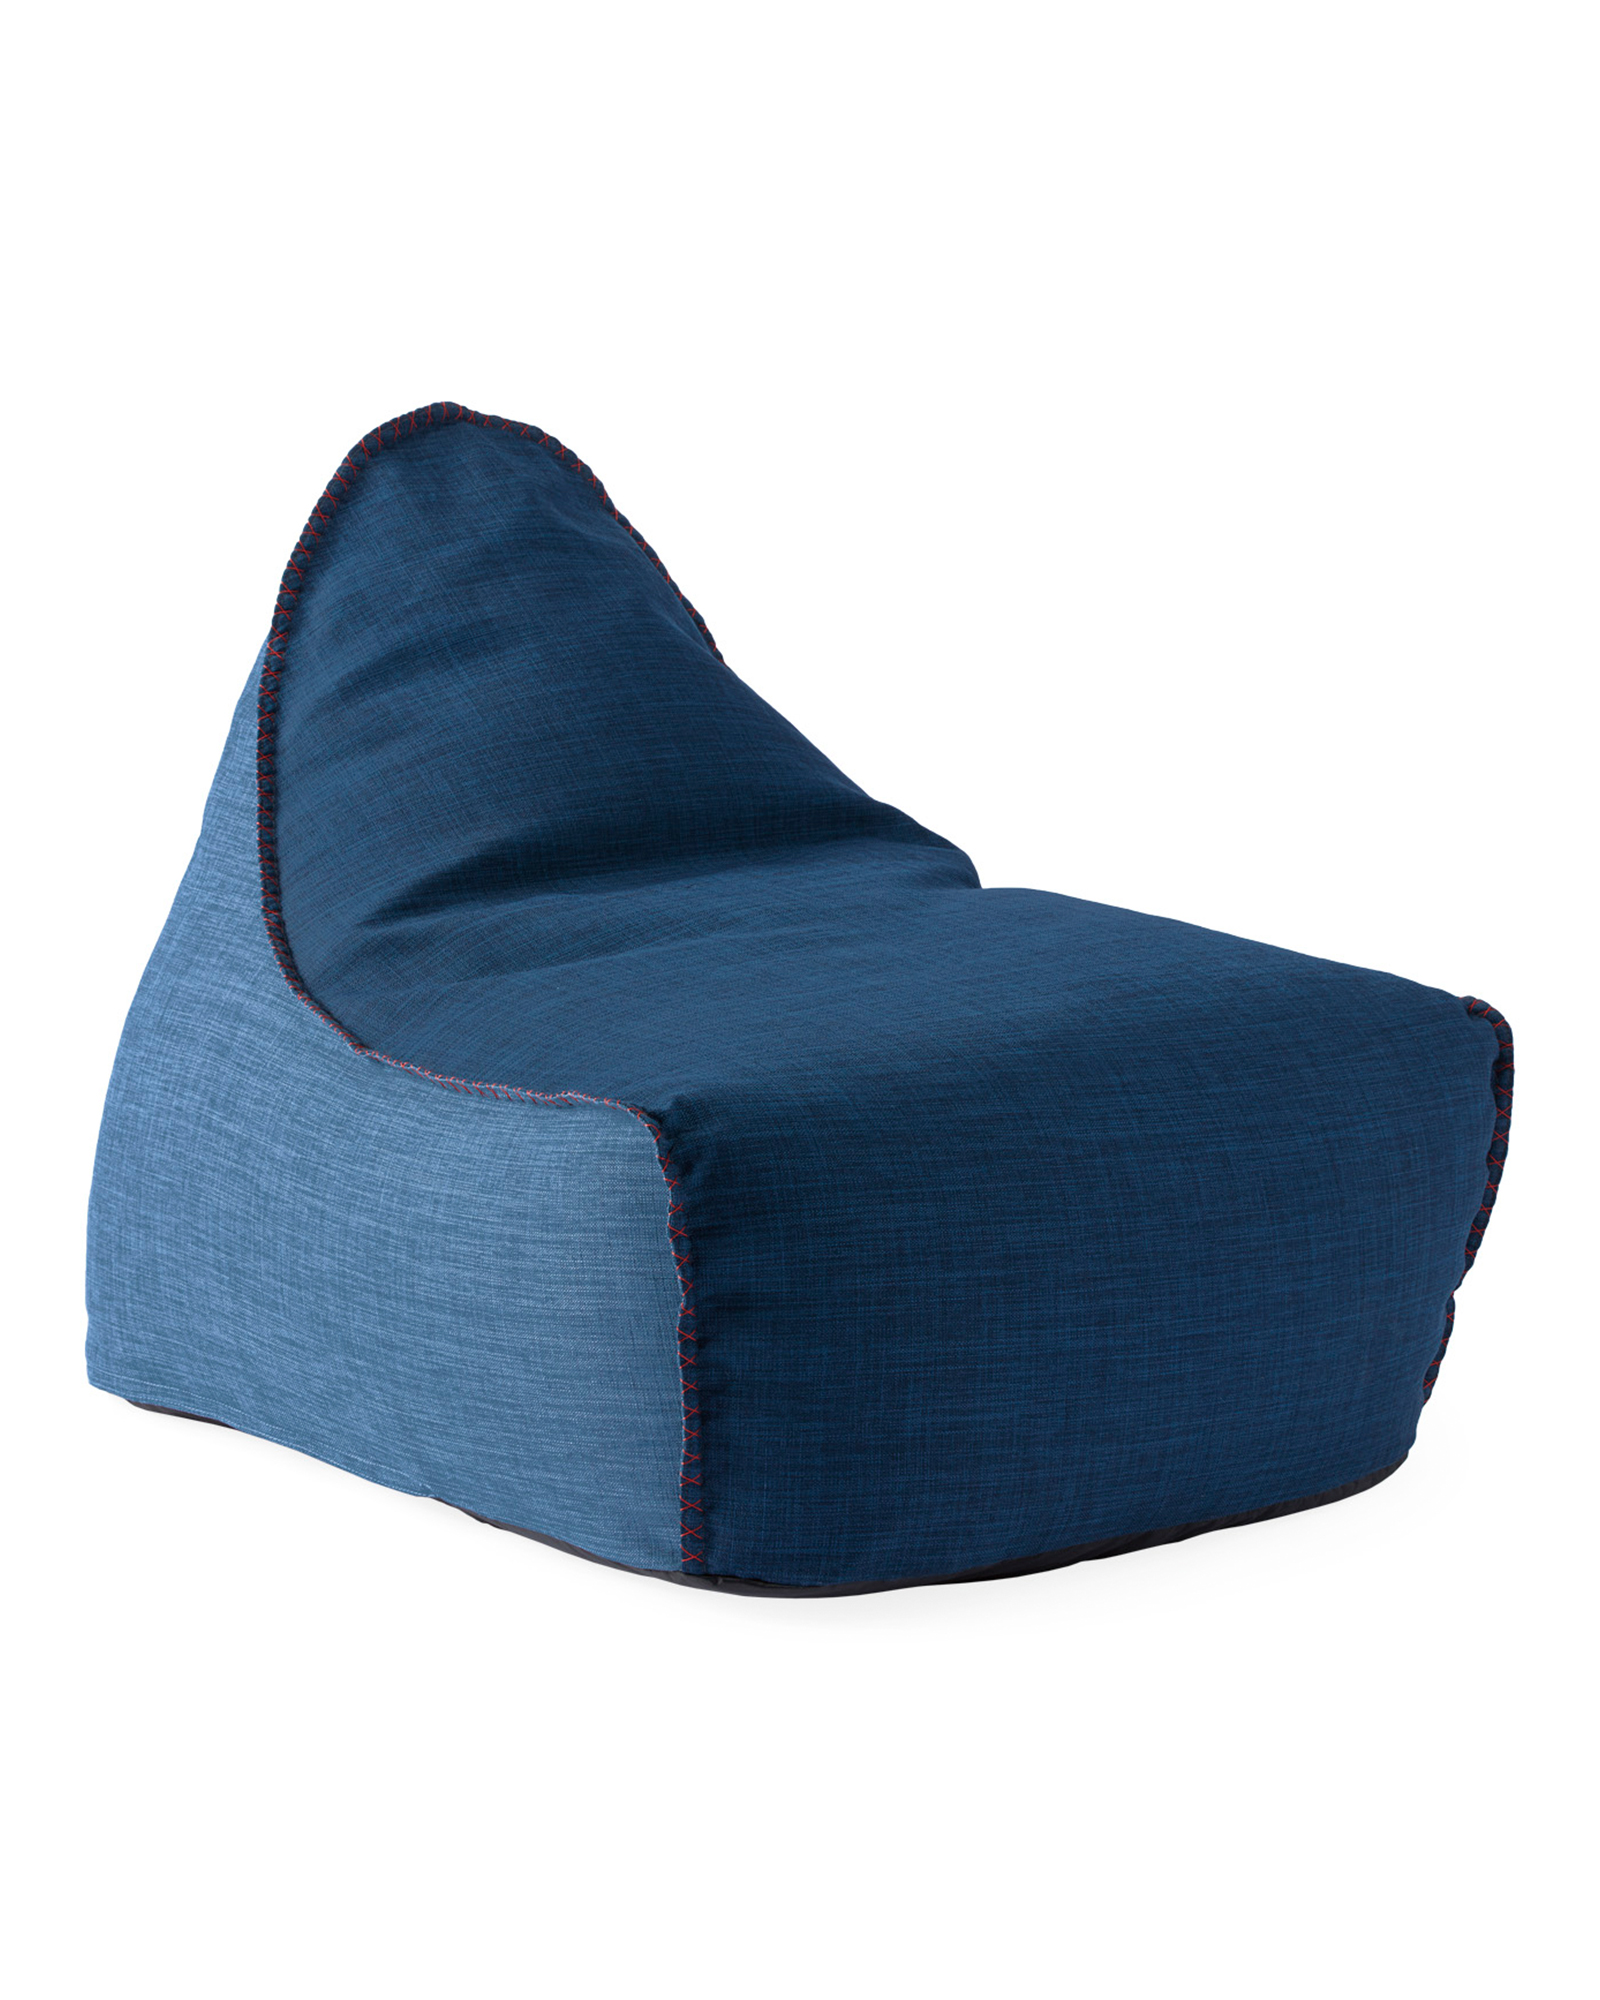 Newport Lounger - Solid, Midnight Blue